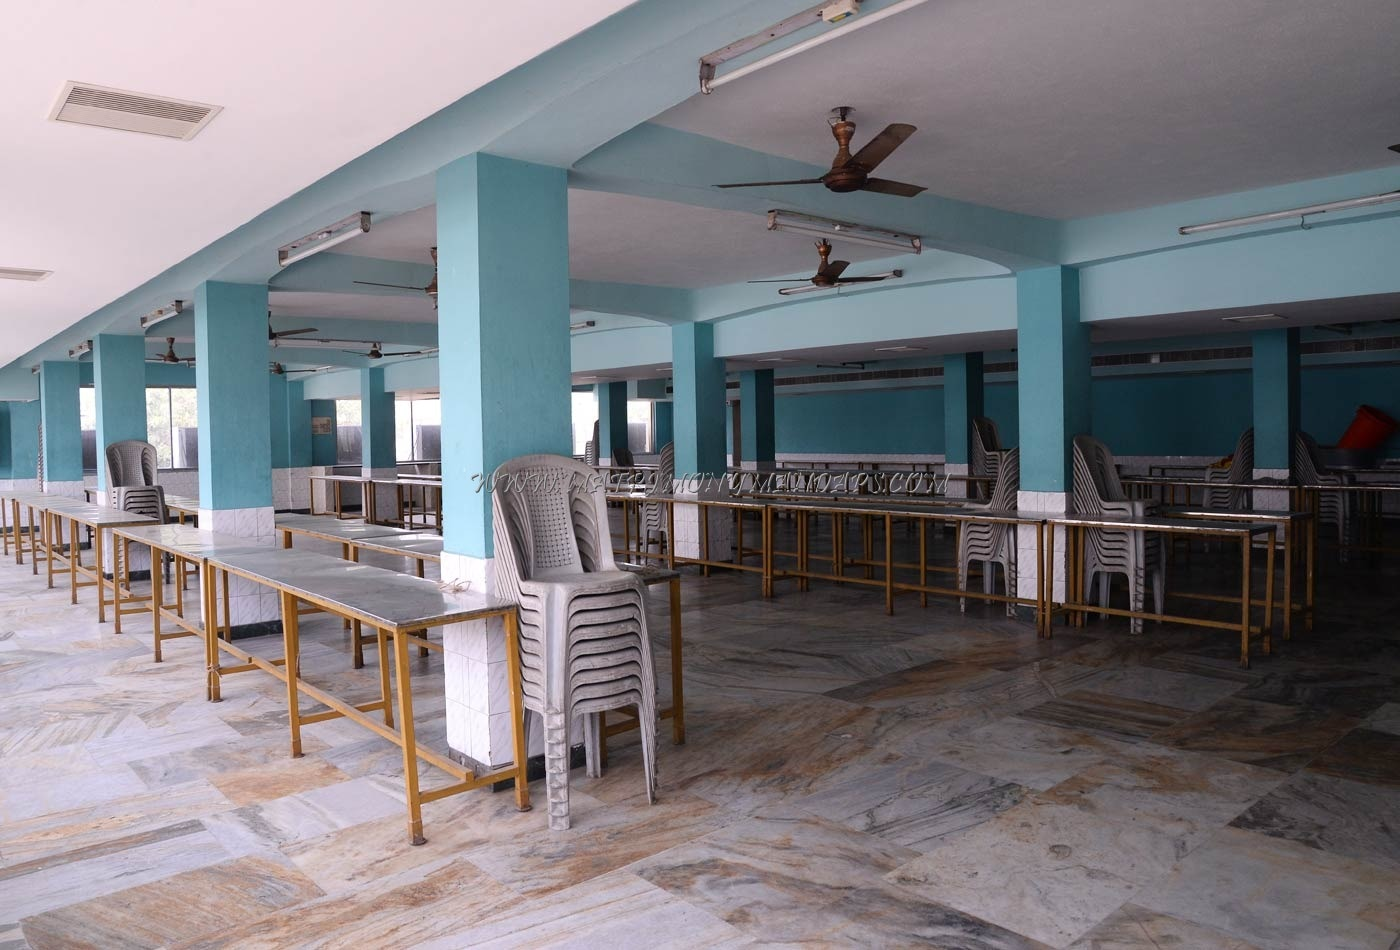 Find the availability of the Sri Kumaran Mahal  (A/C) in Medavakkam, Chennai and avail special offers